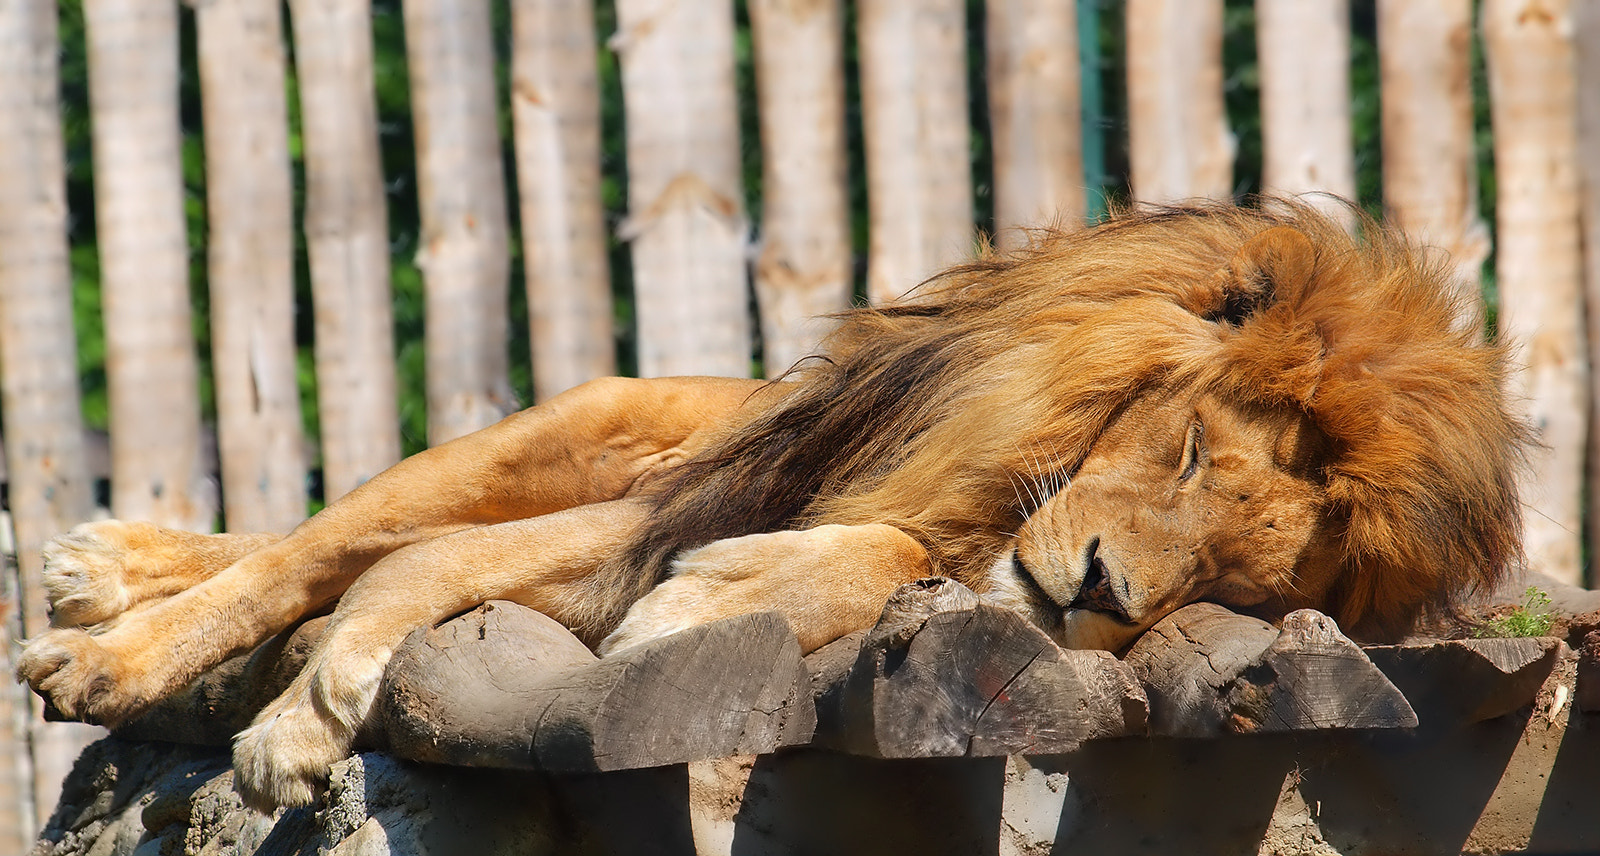 Photograph DON'T TOUCH THE SLEEPING LION by Mirna Vidić on 500px